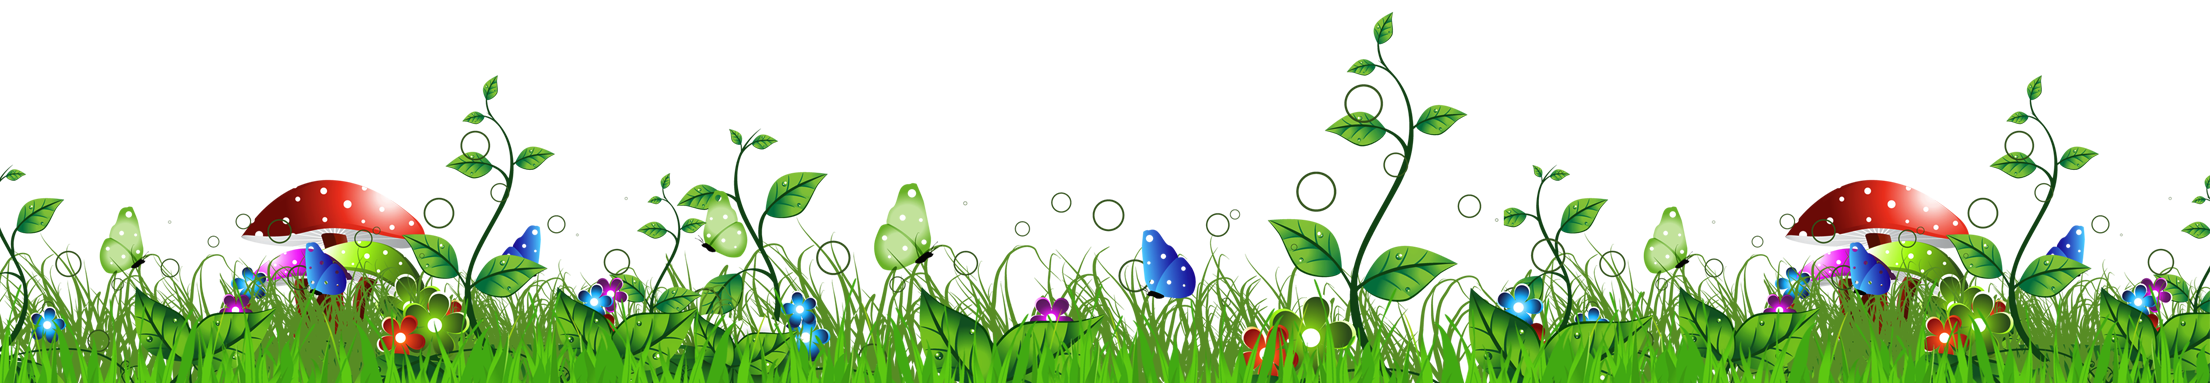 Mushrooms clipart green mushroom. Grass with png picture